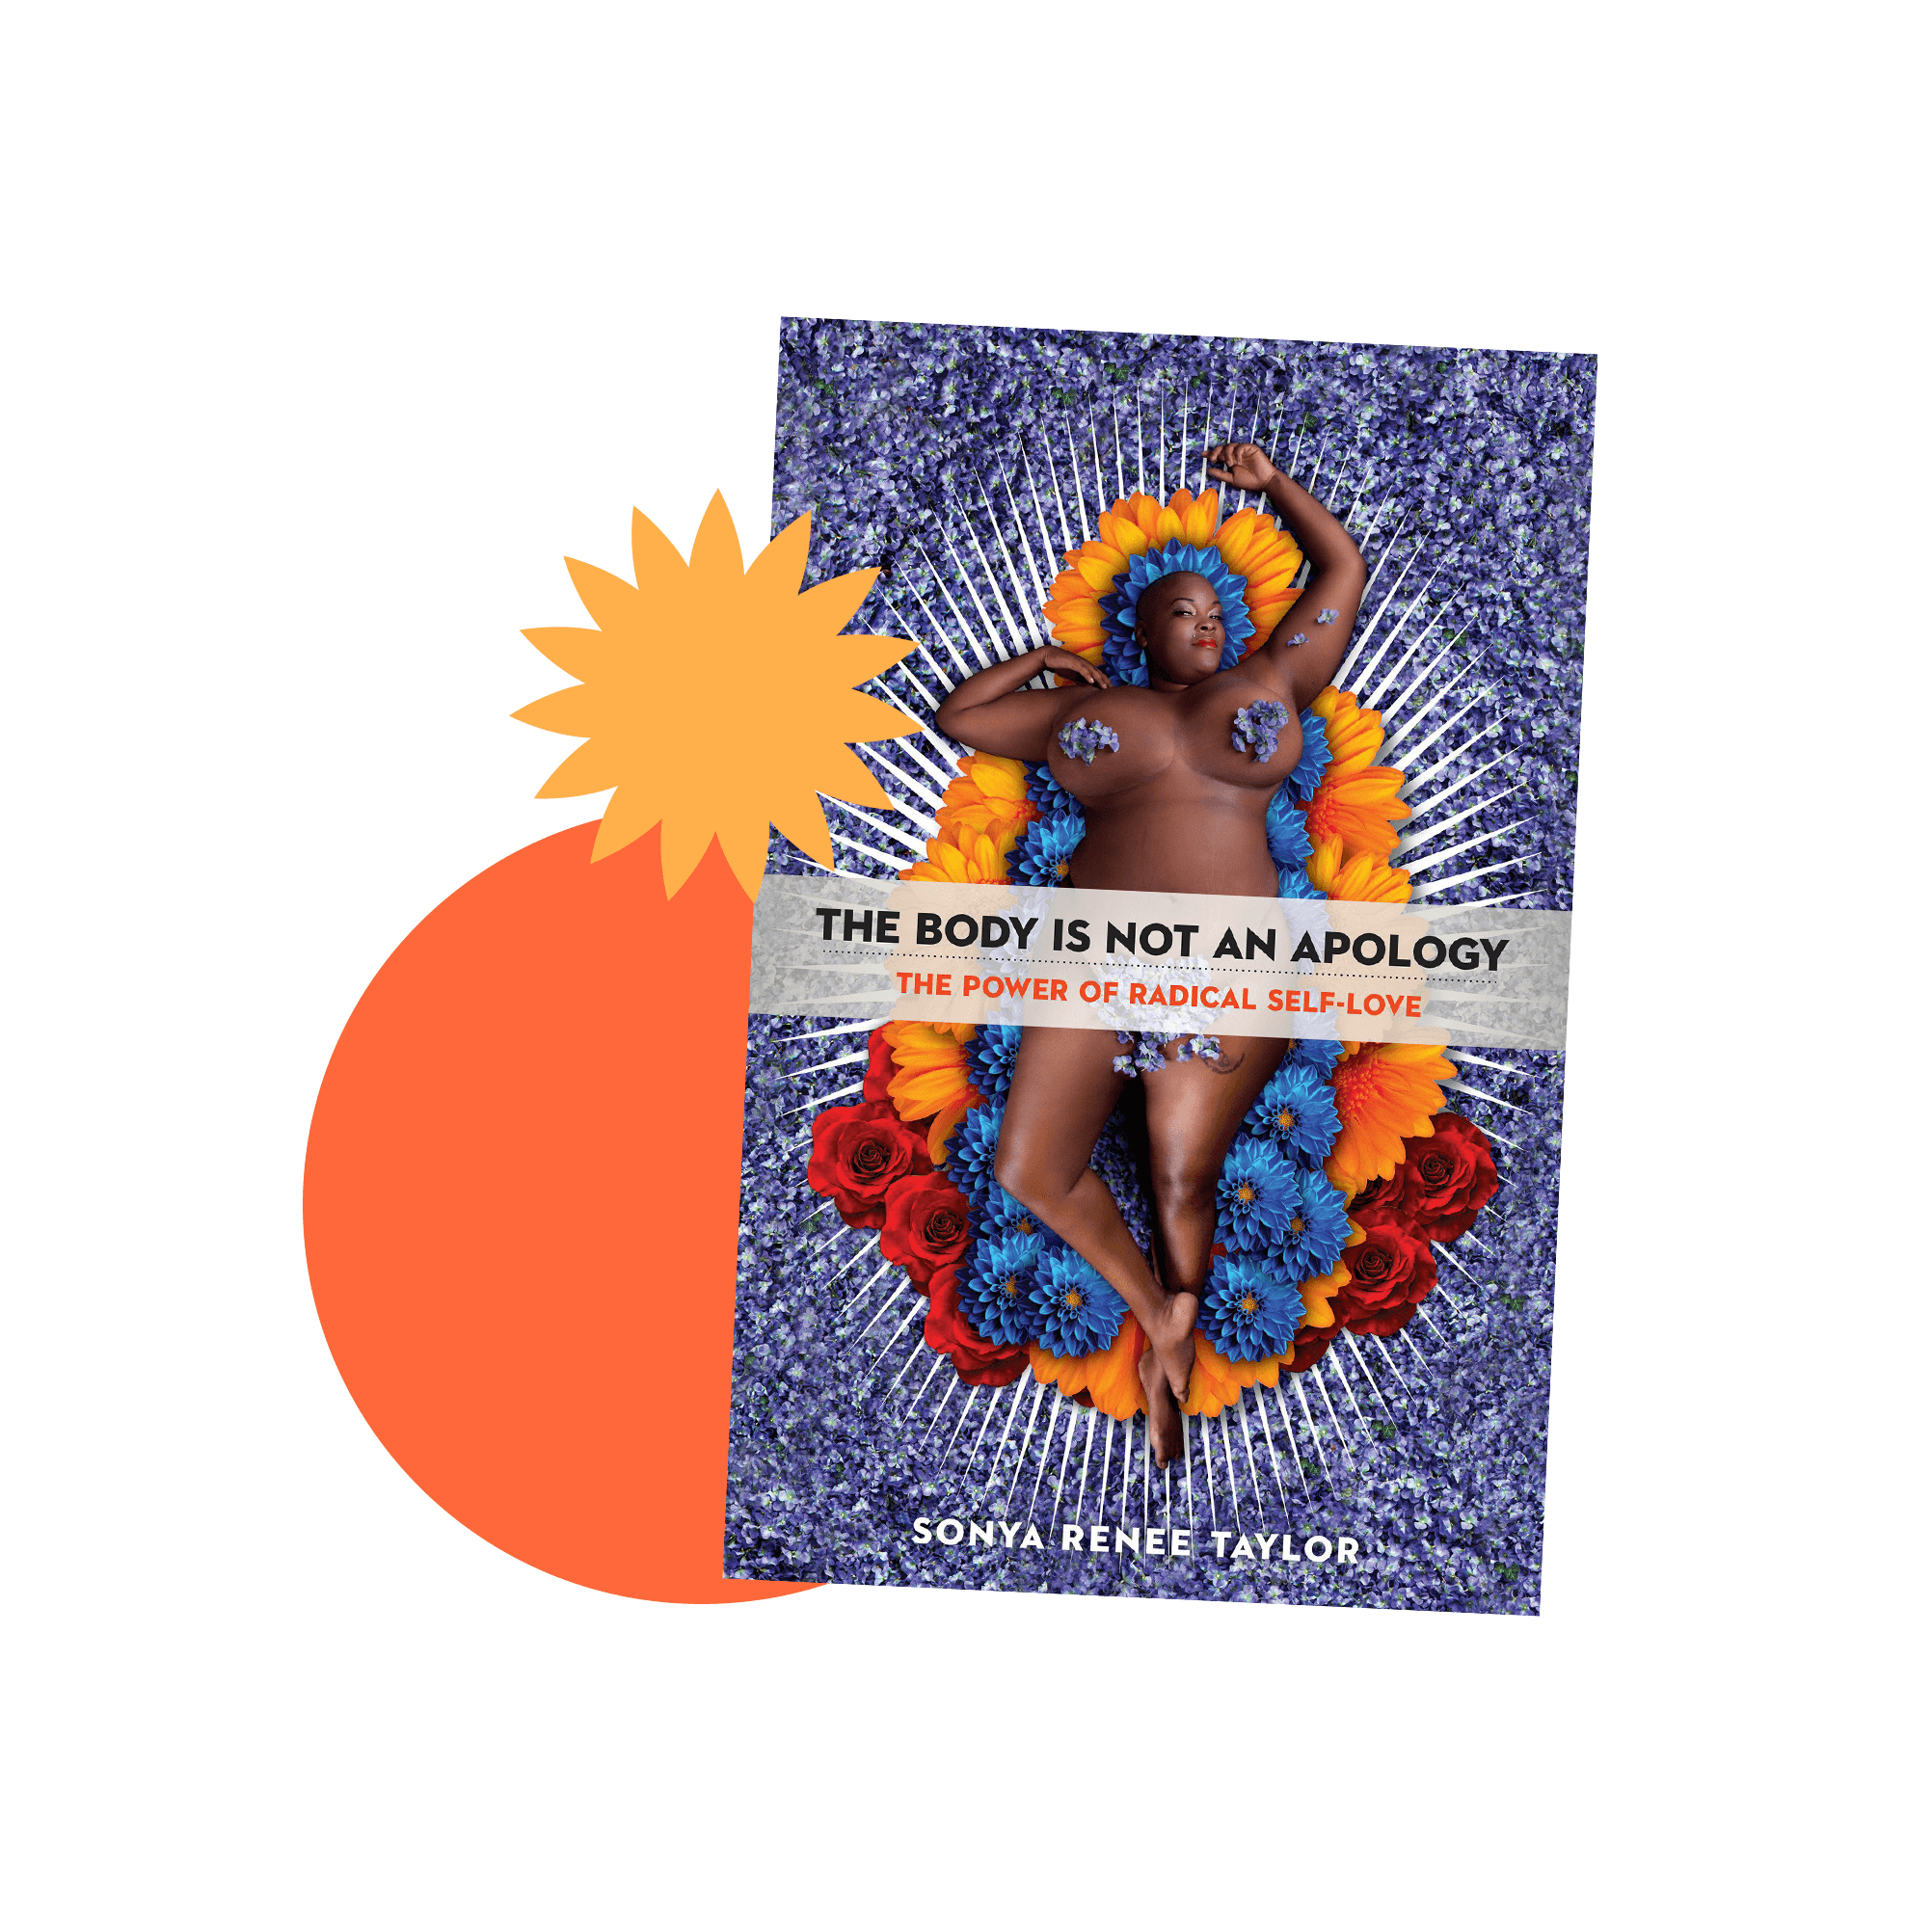 Book jacket cover for The Body Is Not an Apology: The Power of Radical Self-Love by Sonya Renee Taylor